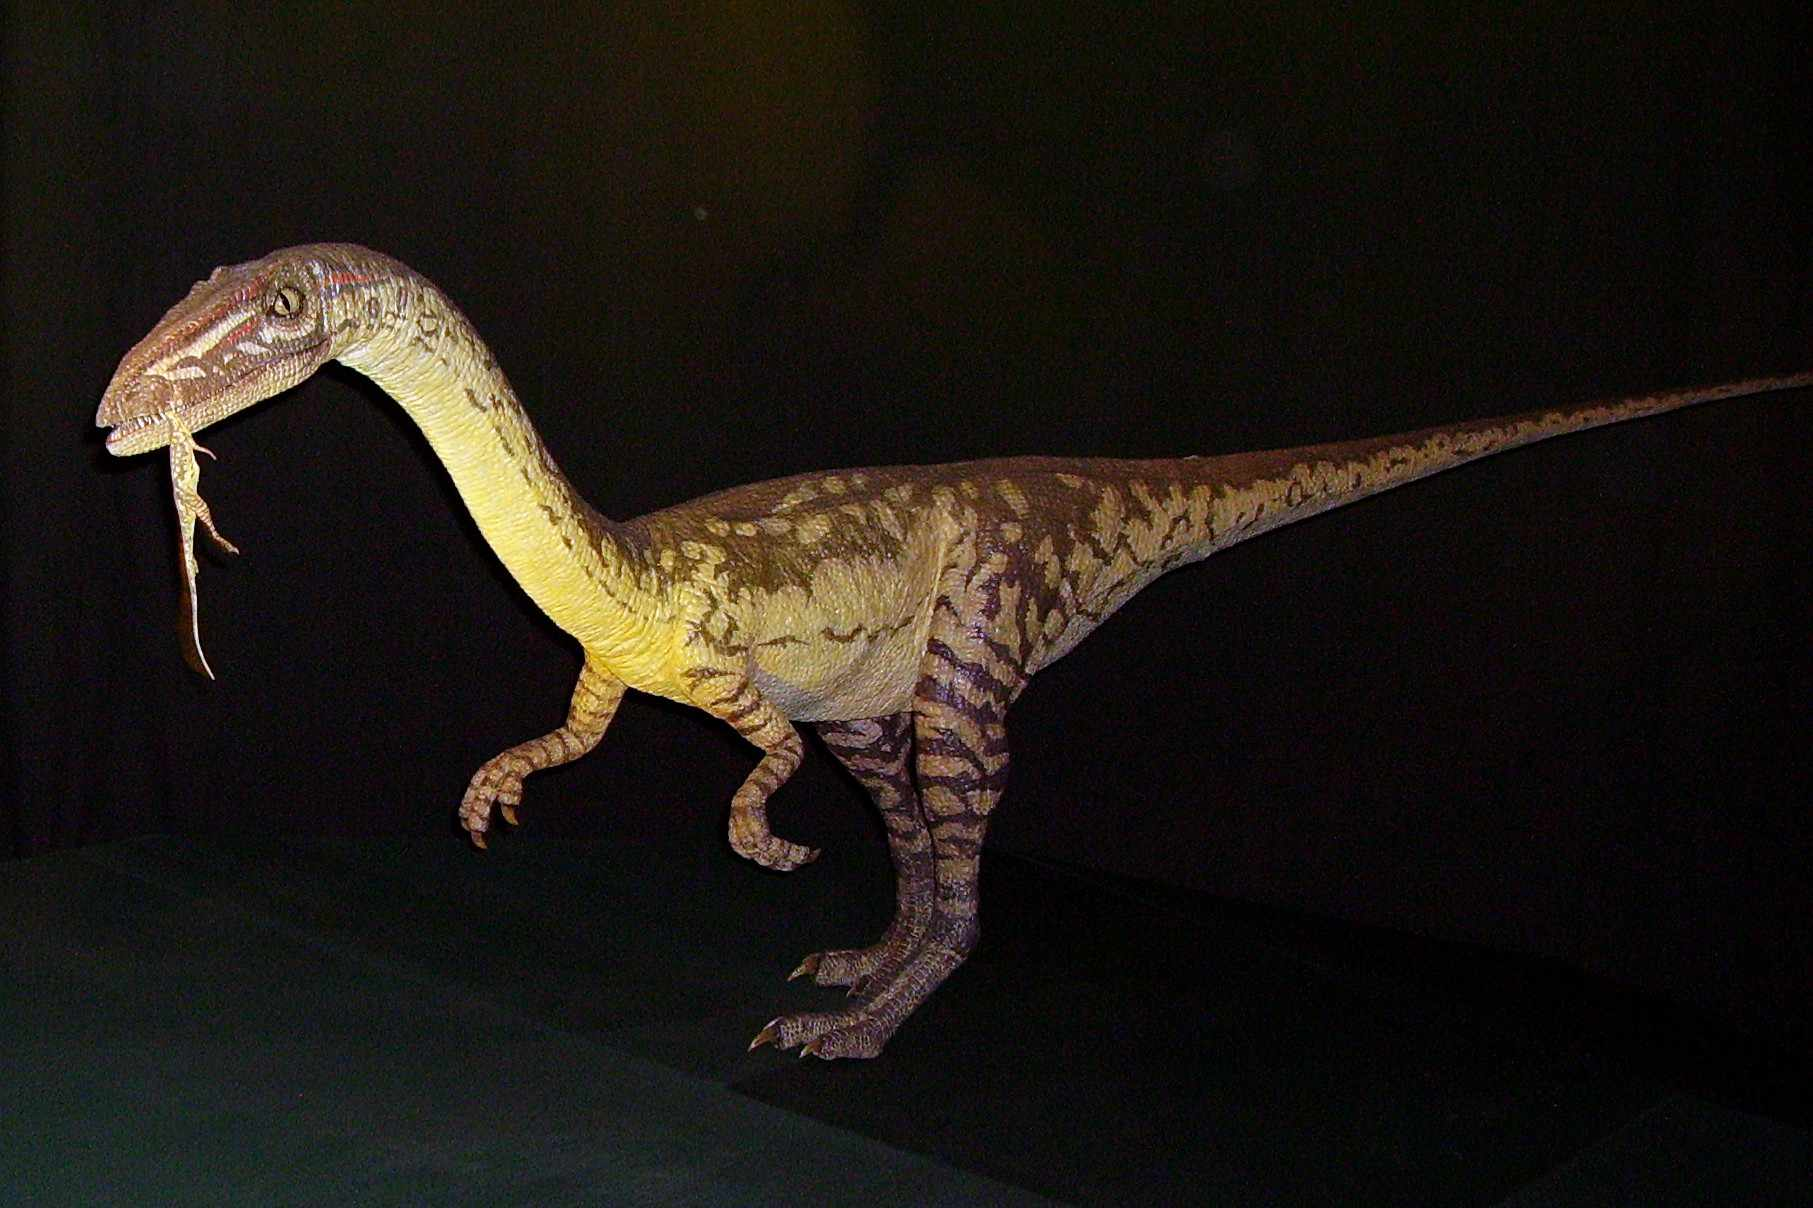 A 3D modeled coelophysis, a dinosaur of New Mexico